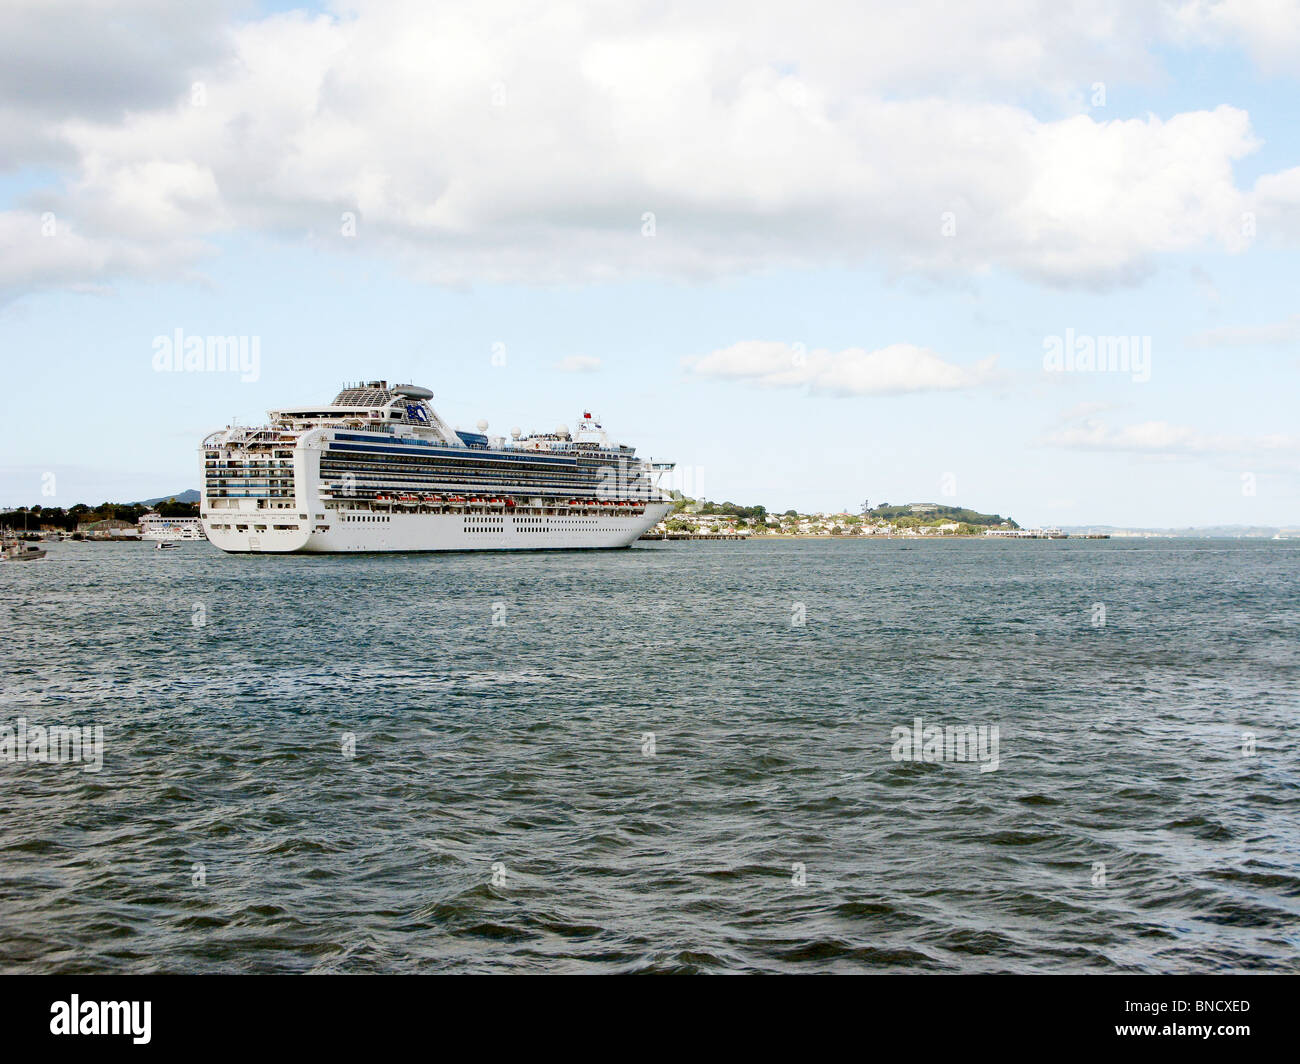 DIAMOND PRINCESS Cruise ship leaves harbour of Auckland New Zealand 2010 - Stock Image